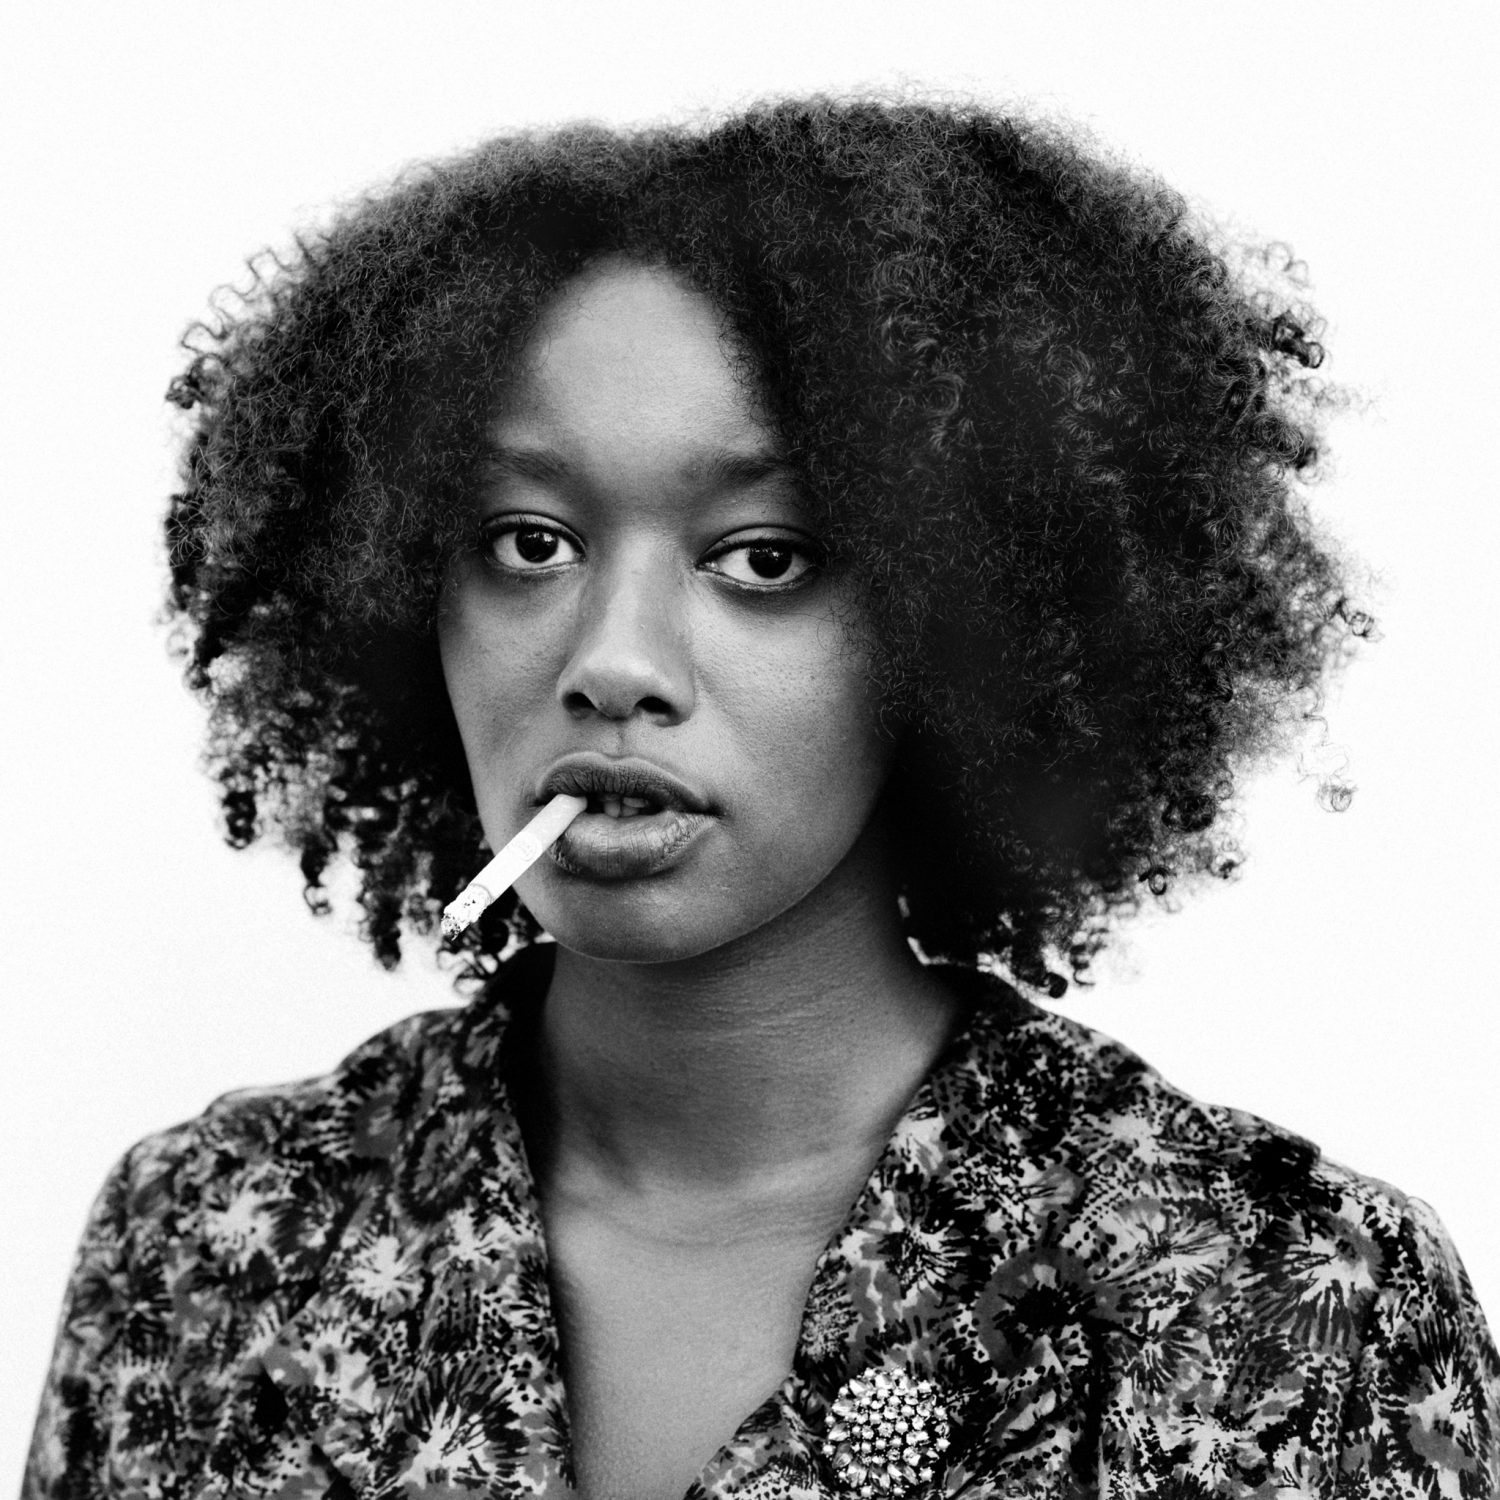 Mirel Wagner Croons a Very Sedated Ramones Cover